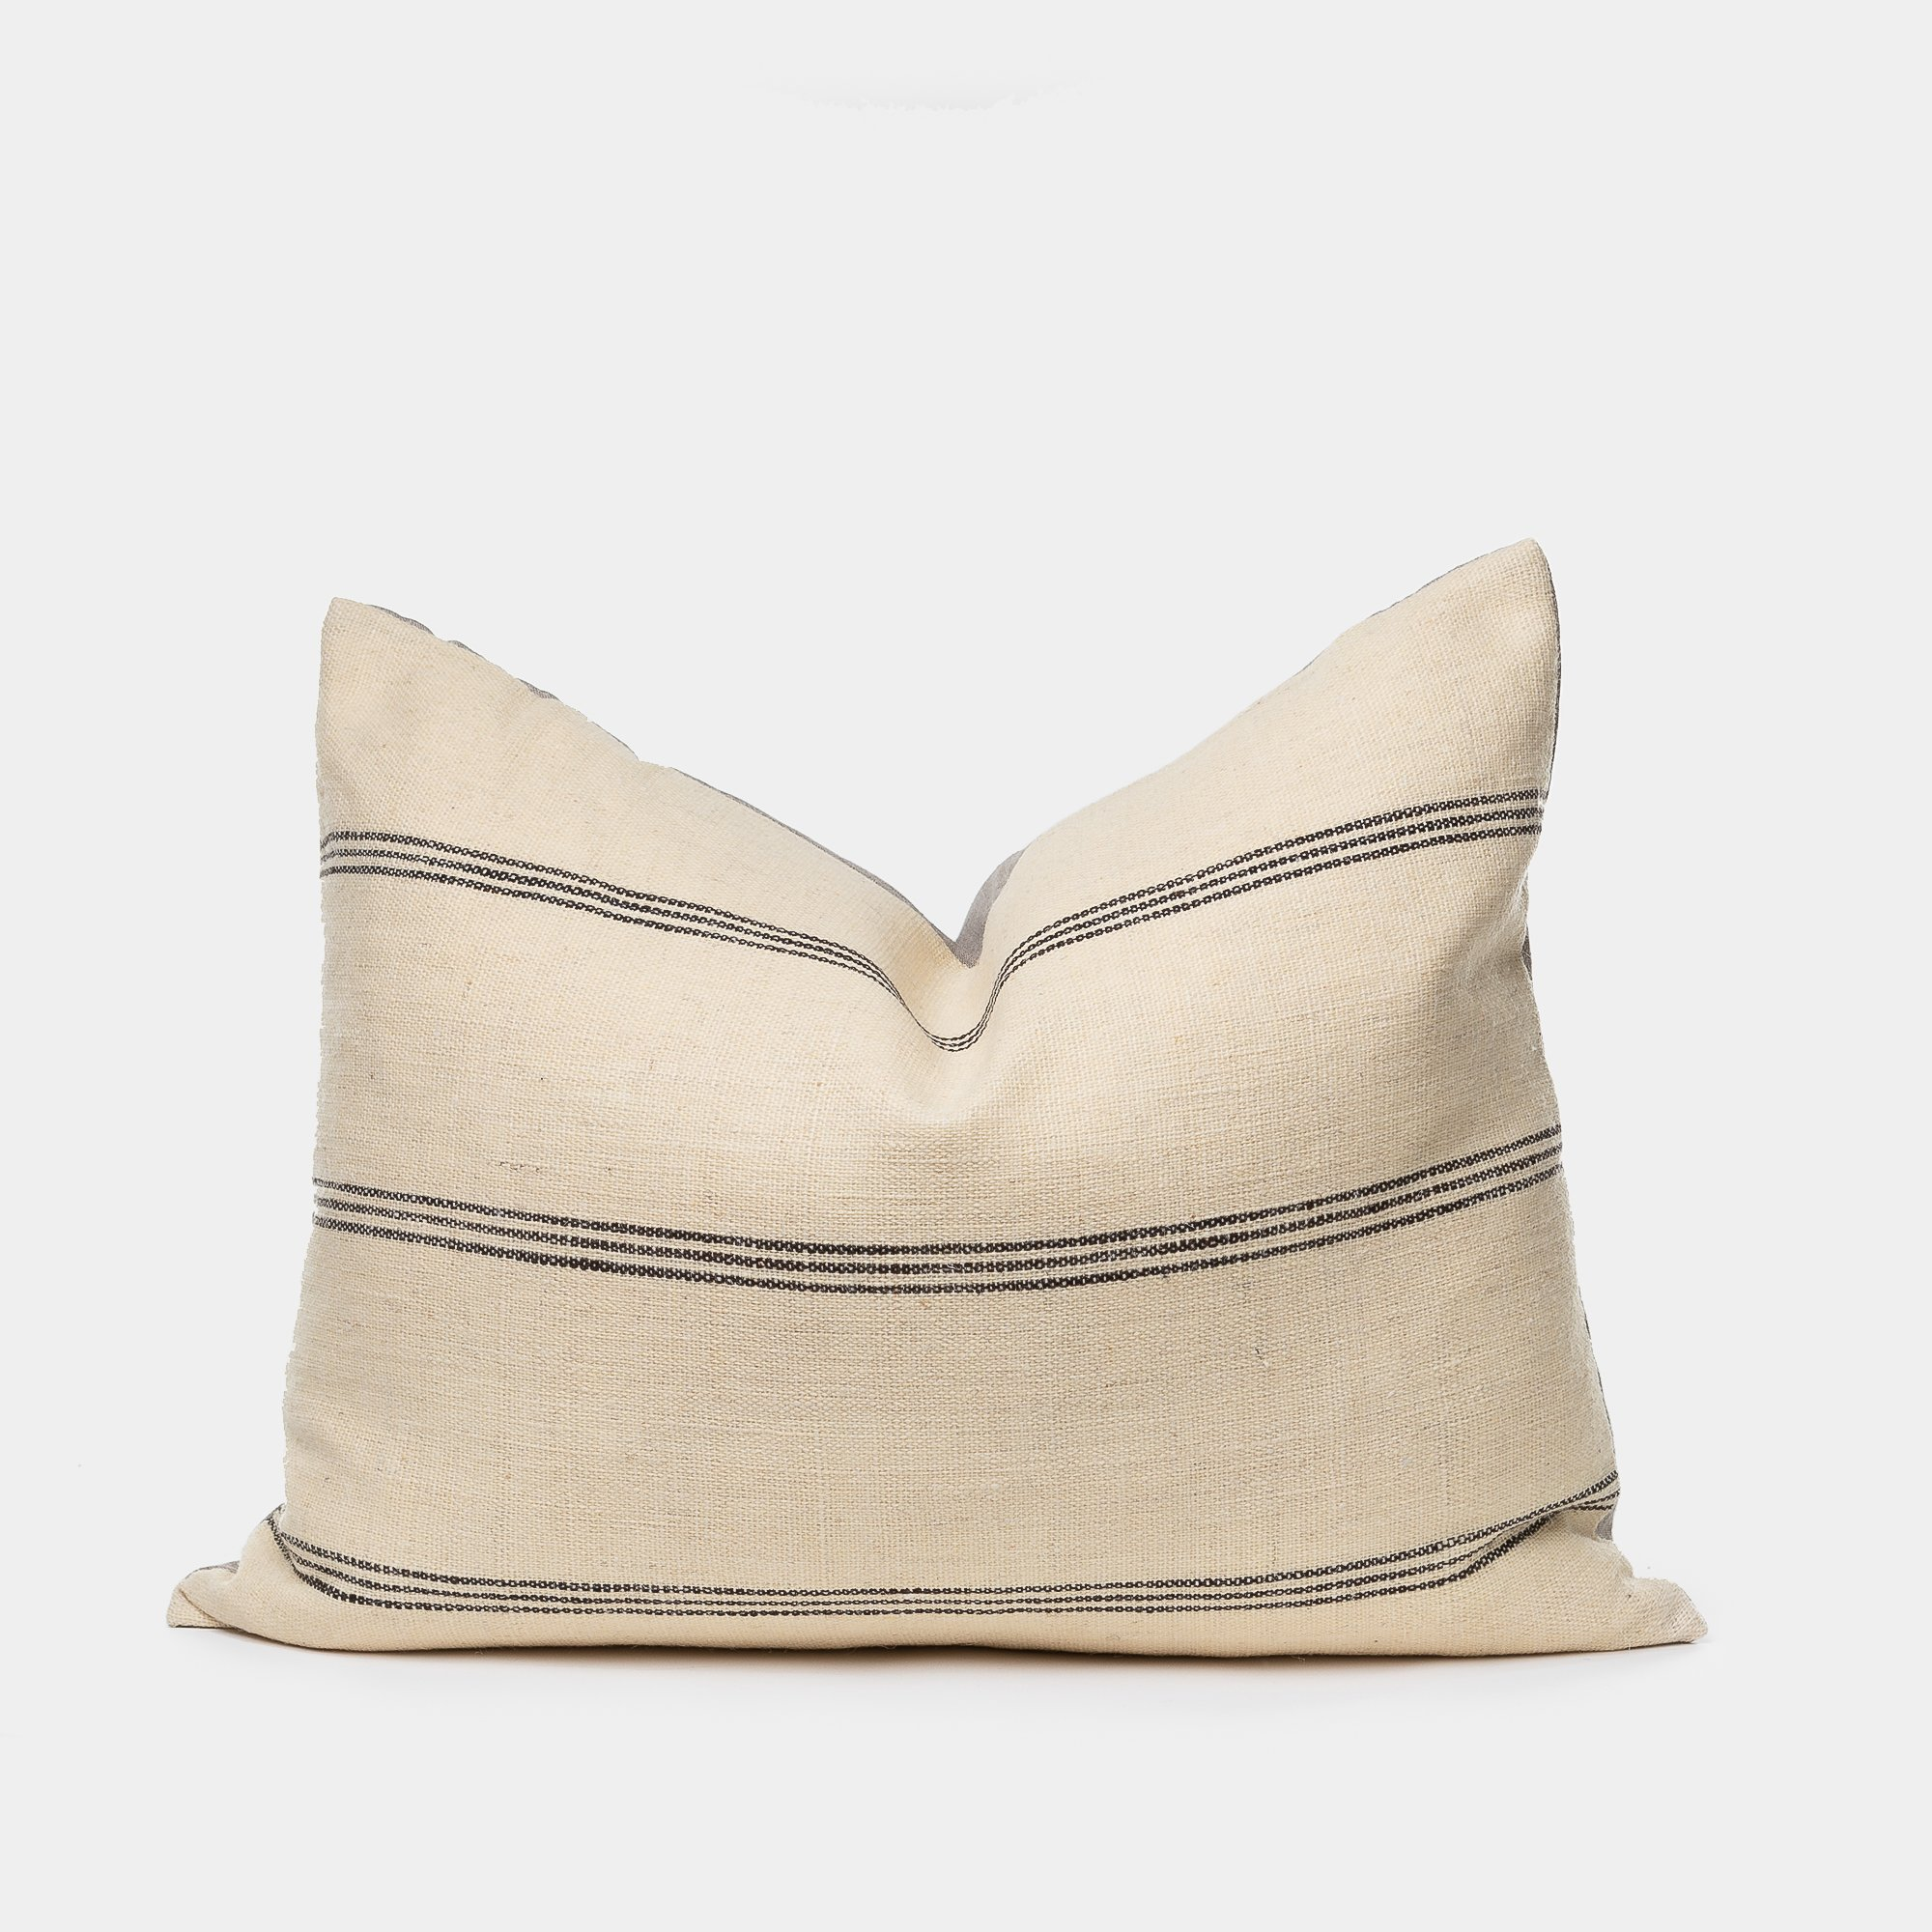 ALL-SORTS-OF-SHOPPE-MELAN-PILLOW